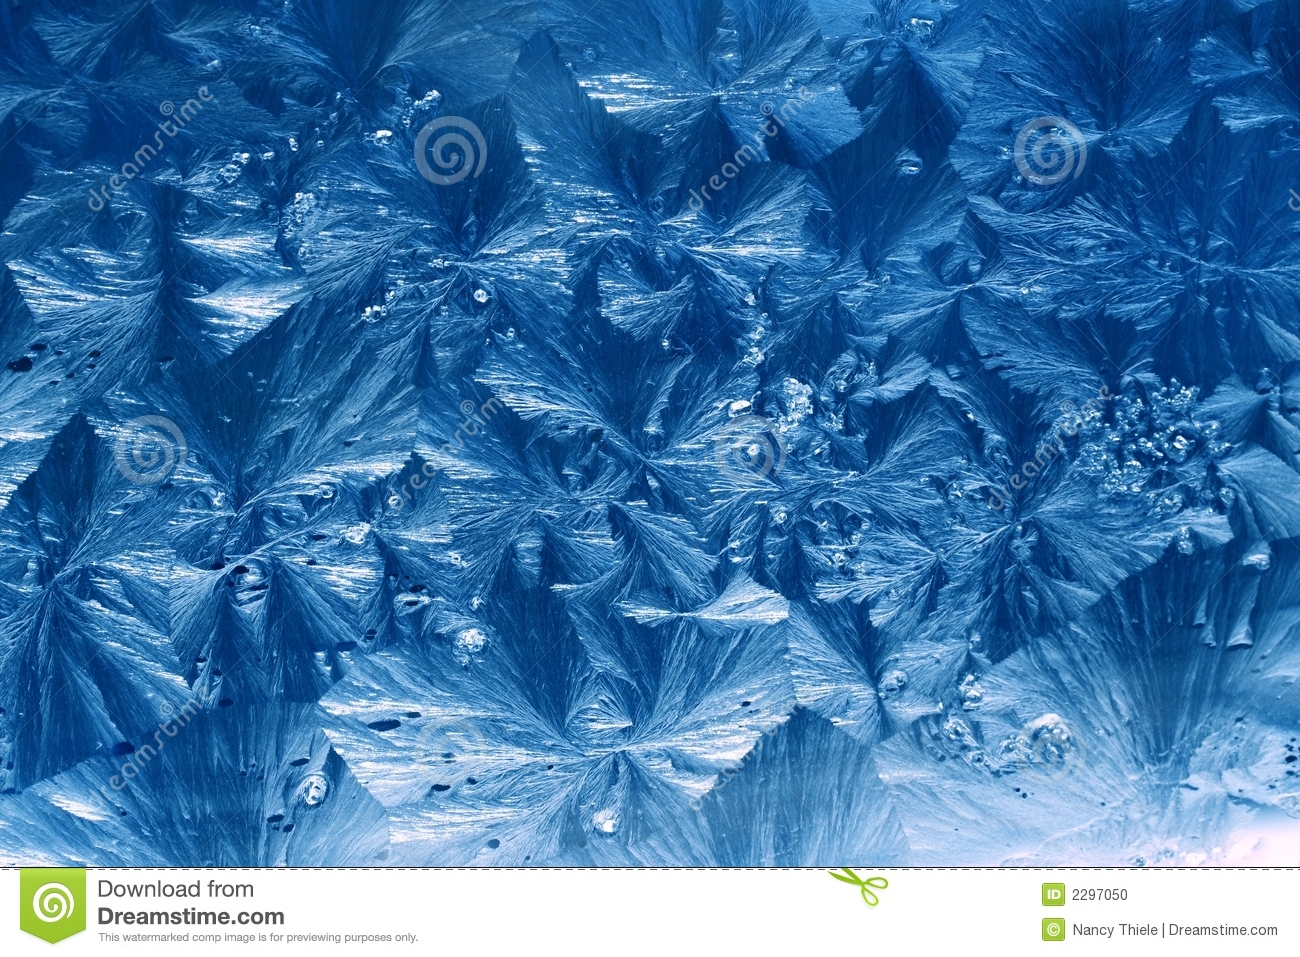 Falling Snow Wallpaper Download Jack Frost Ice Patterns Stock Photo Image Of Crystal